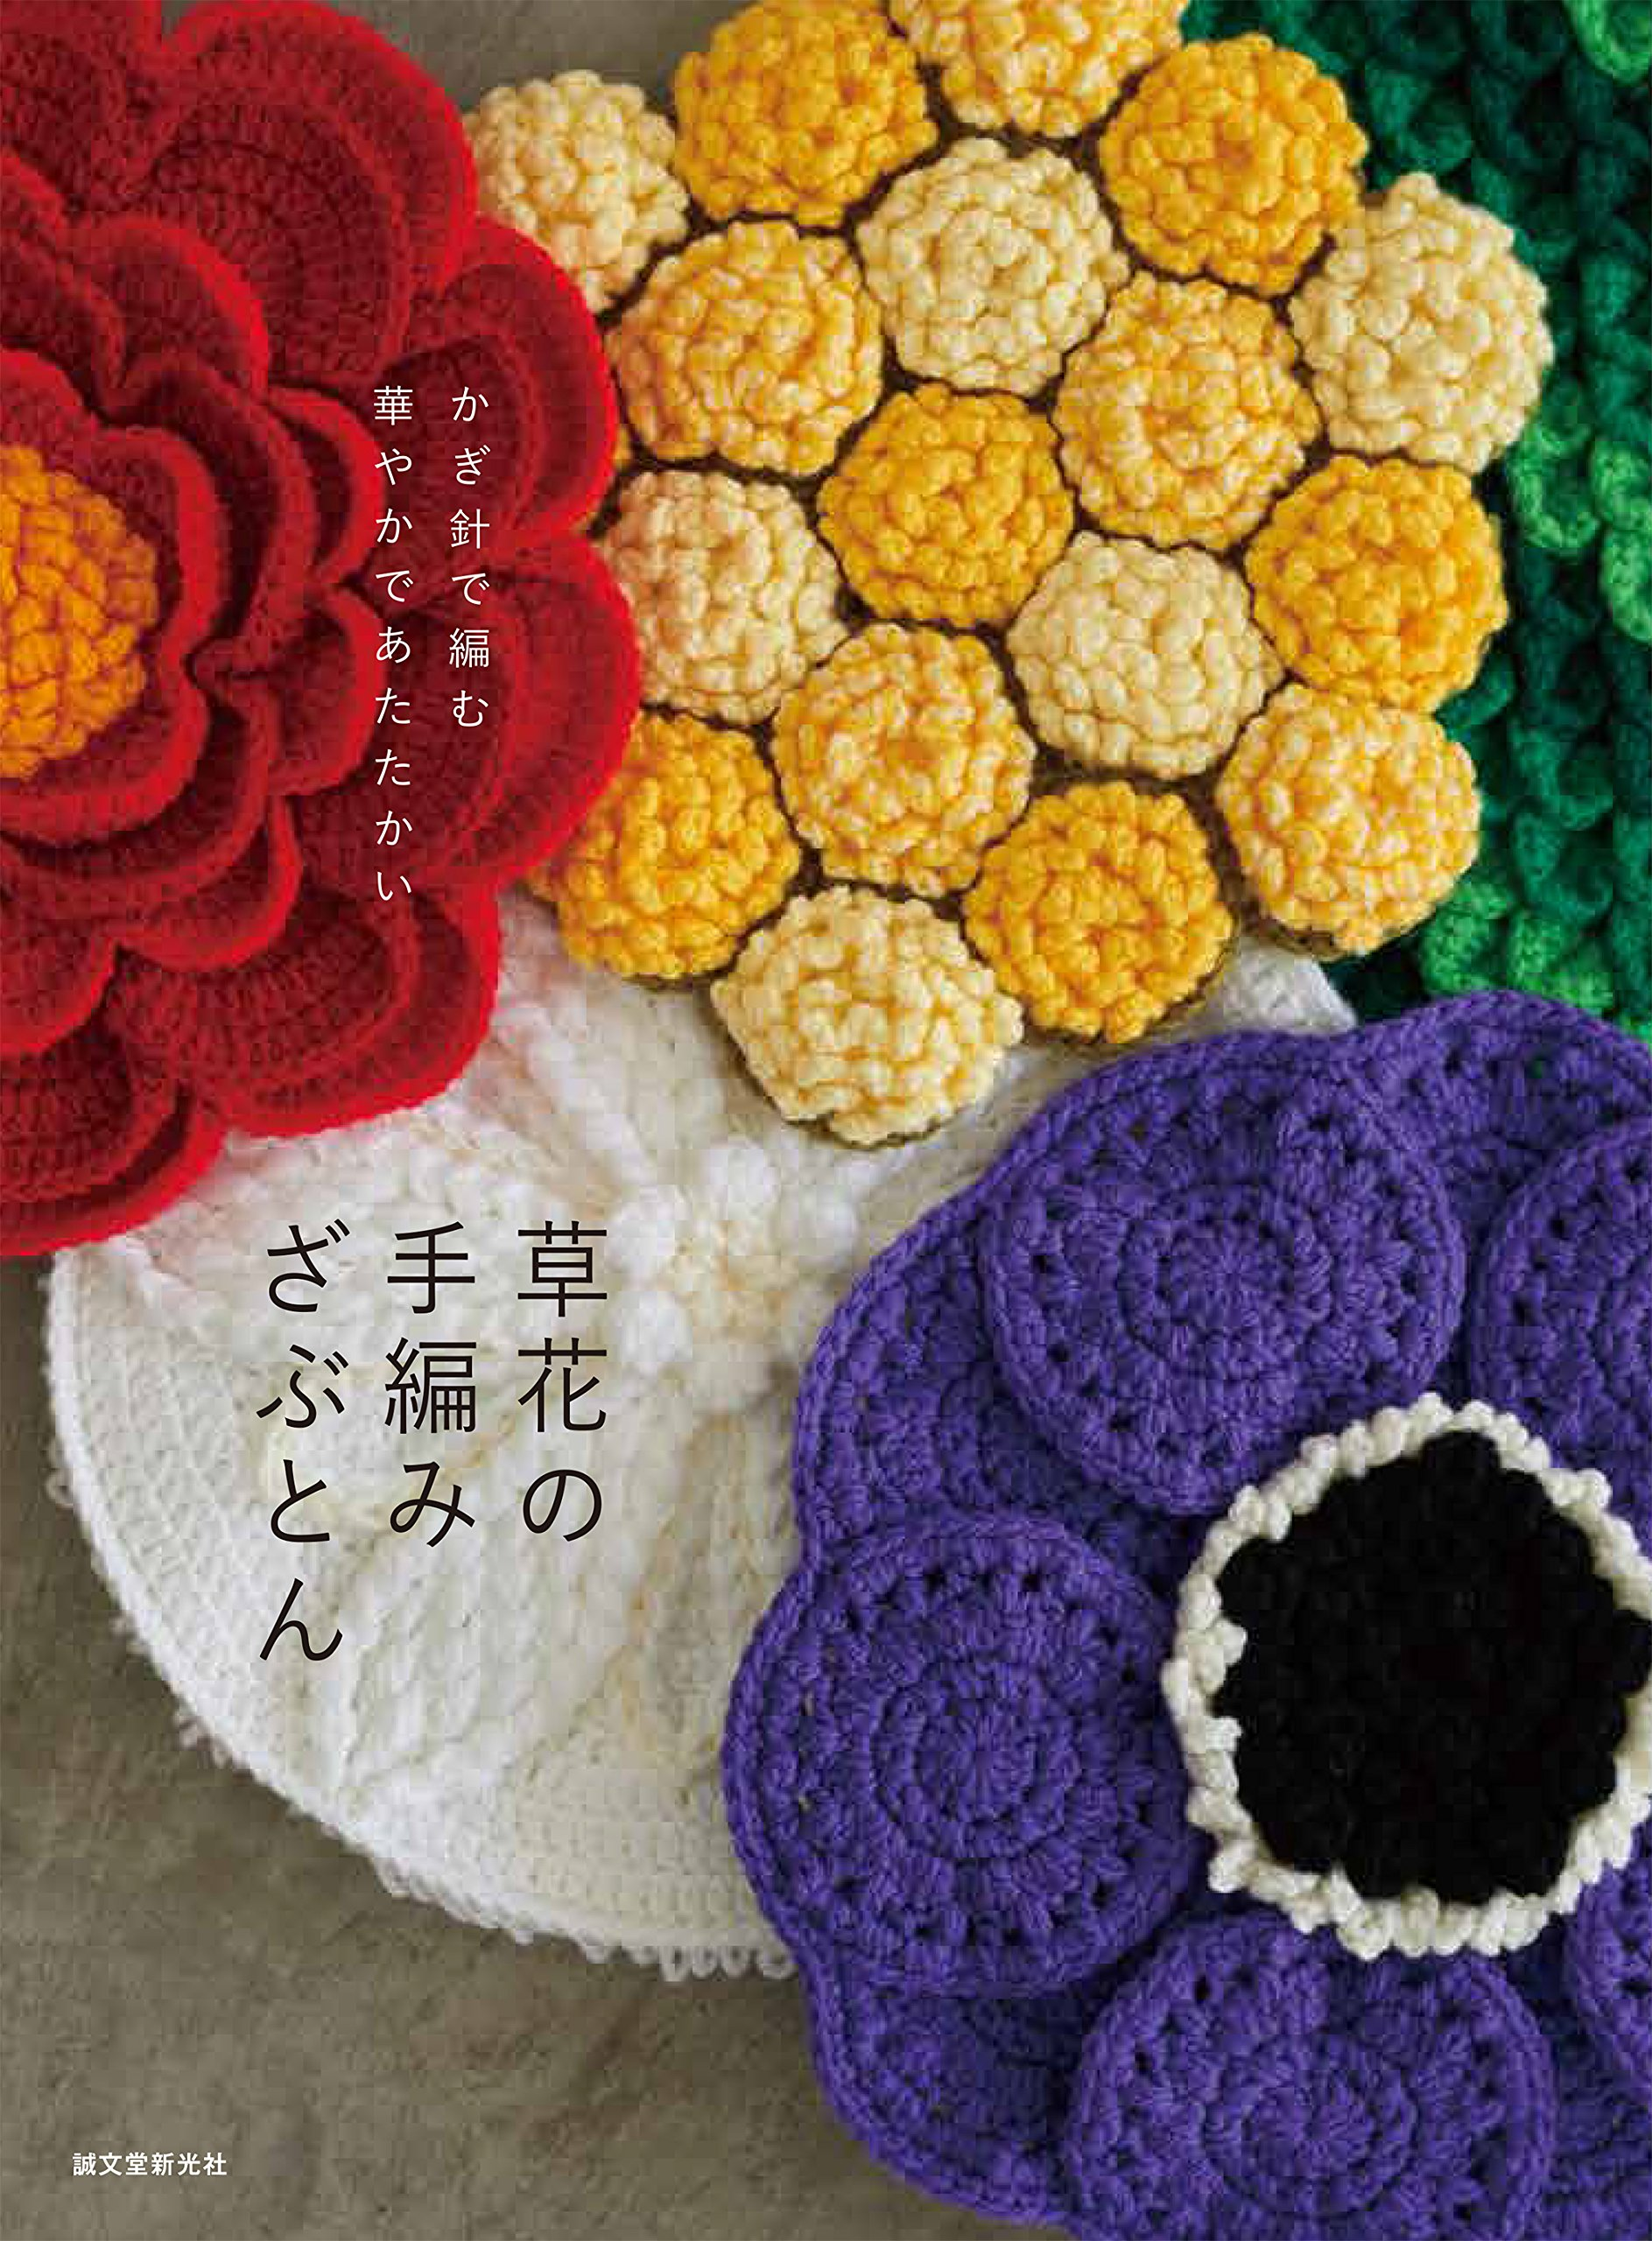 Flowers crochet cushion